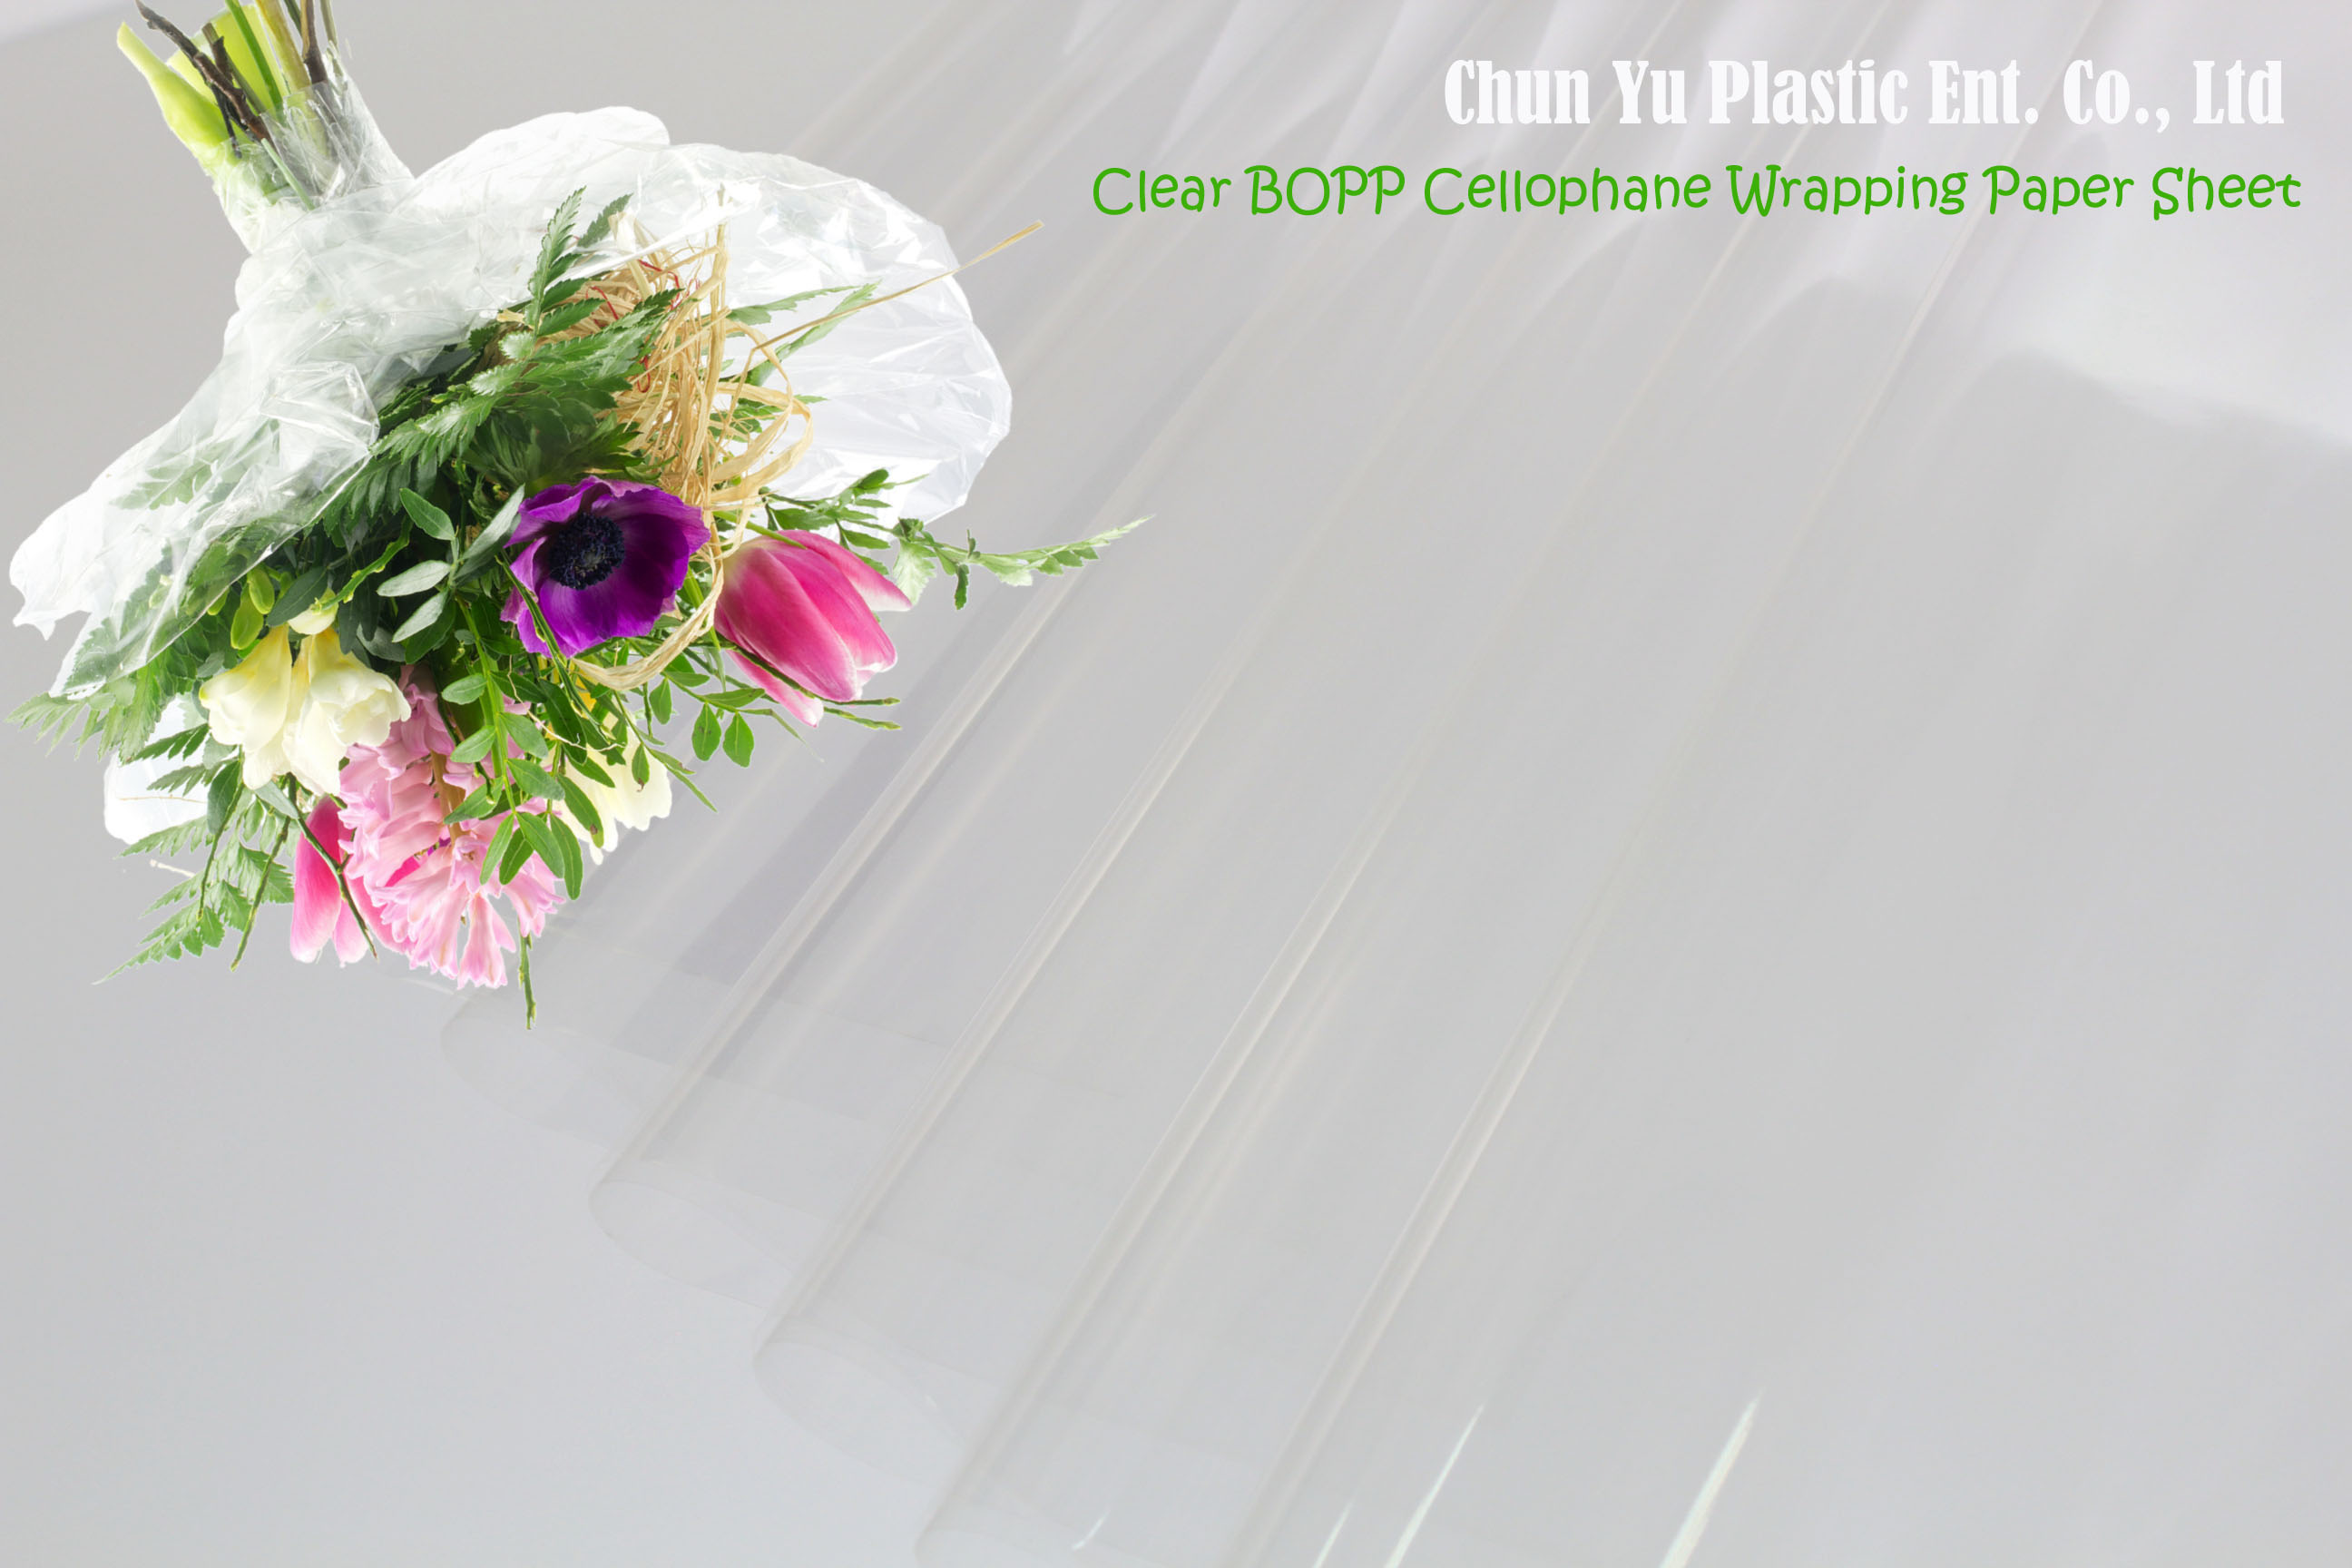 Clear bopp cellophane wrapping paper sheet manufacturing chun yu cut flower bouquet wrapped with clear cellophane wrapping paper sheet mightylinksfo